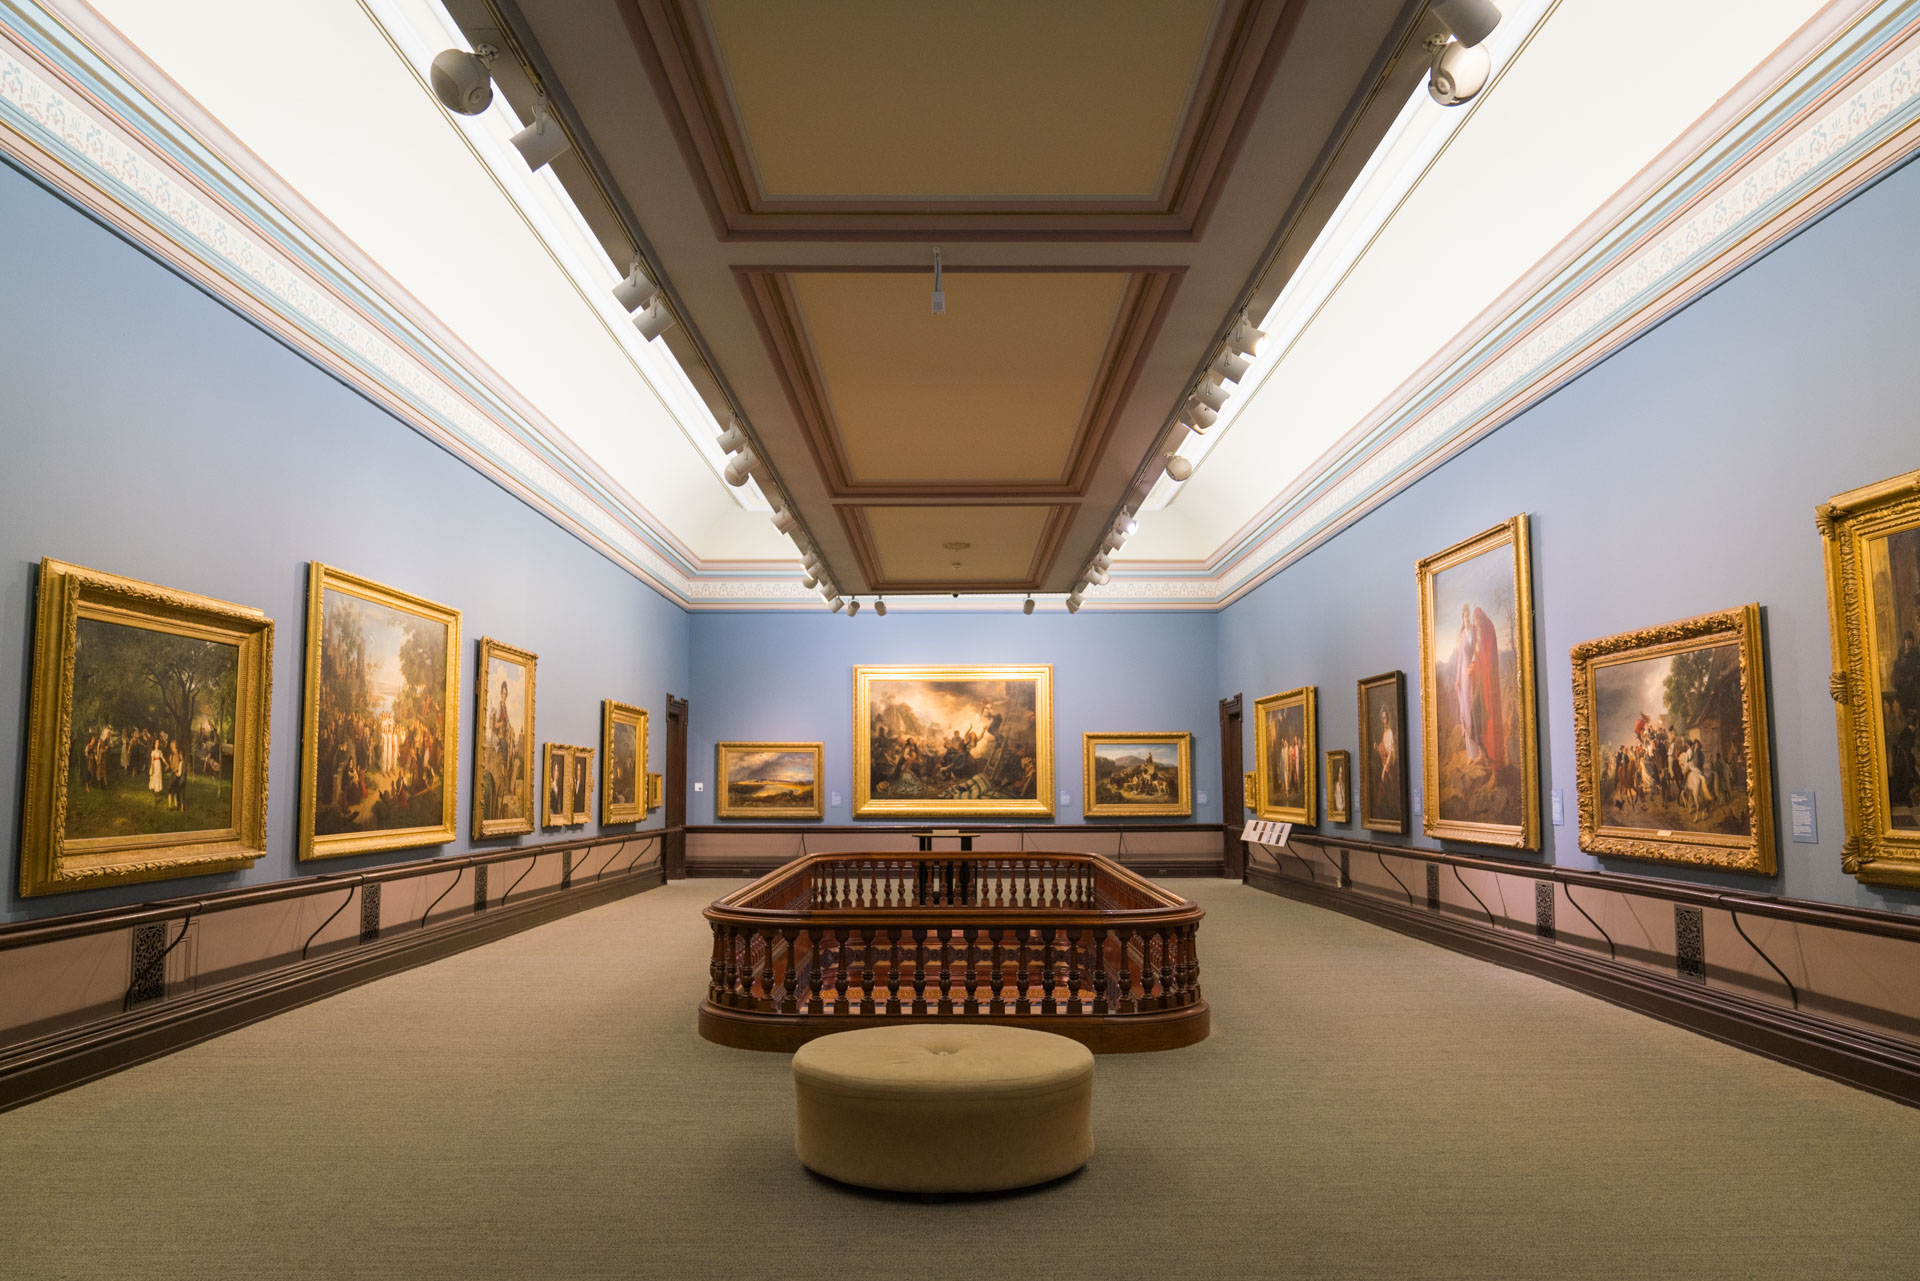 Interior of Crocker Art Museum in Sacramento CA